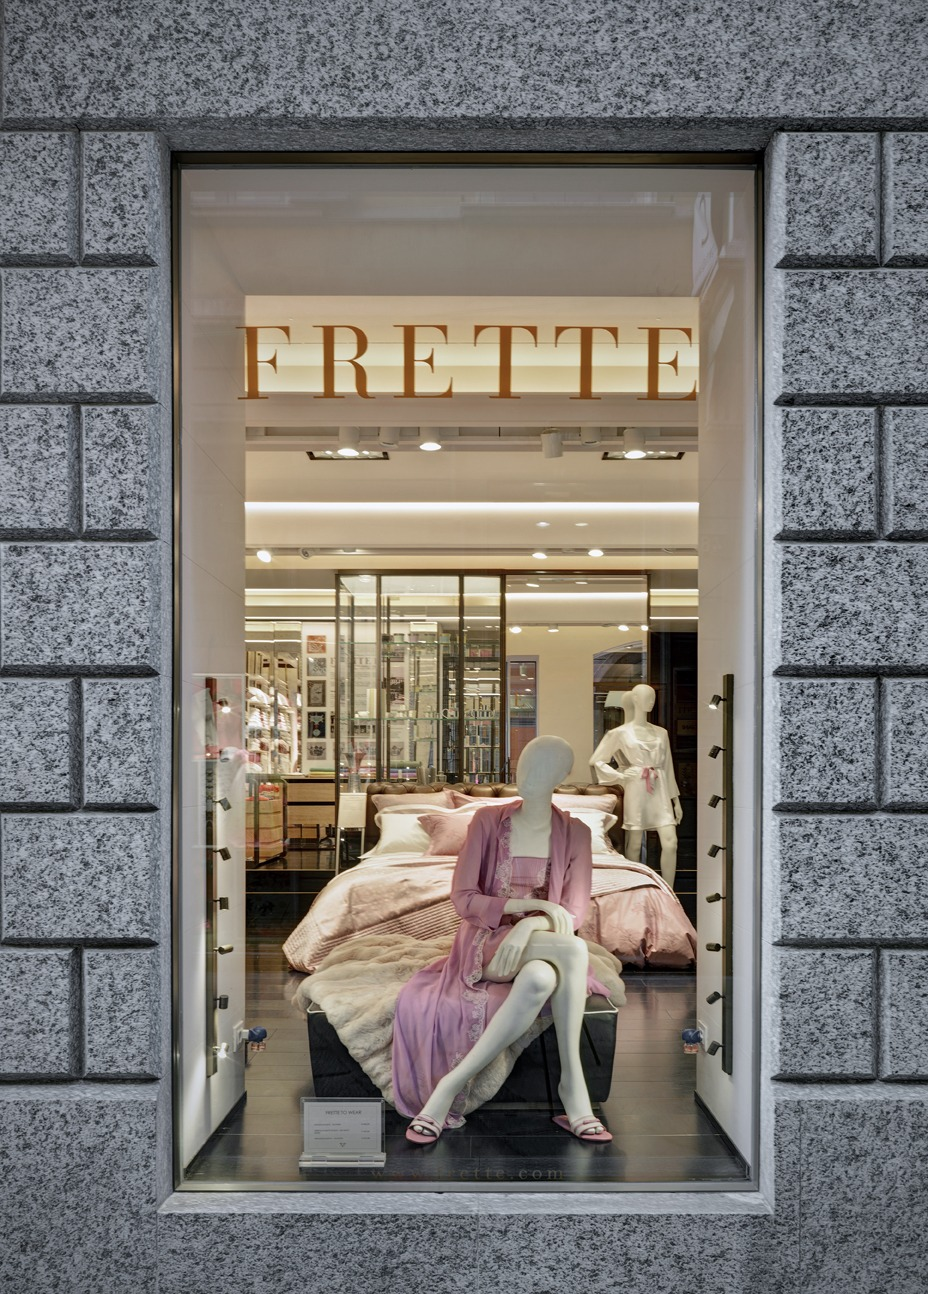 frette milano marcello mariana photography